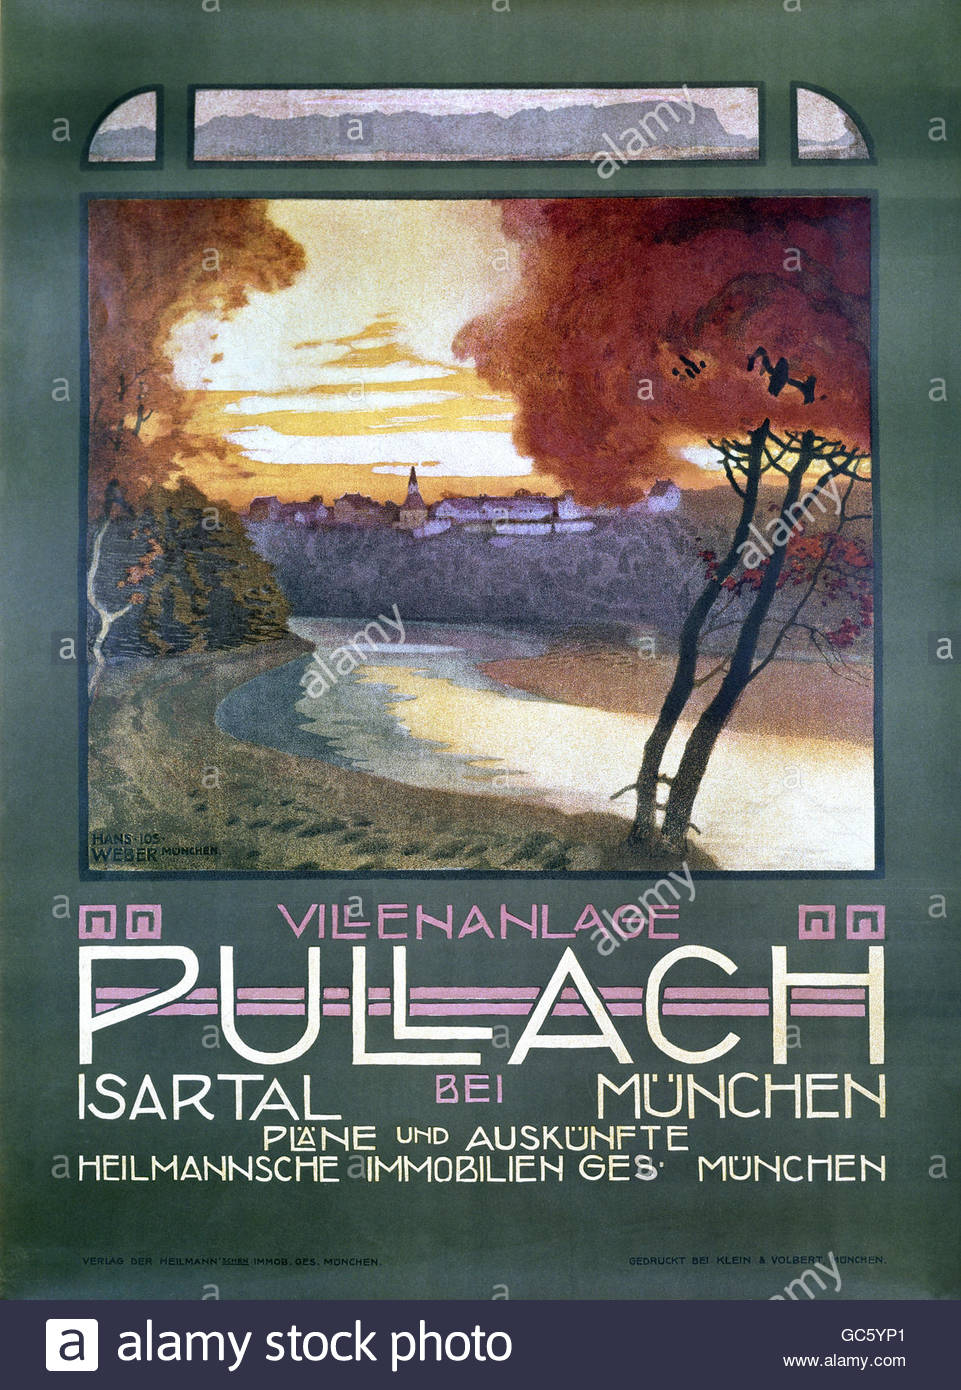 advertising, real property, exclusive residential area, Pullach, Isar Valley, poster, Heilmannsche Immobliengesellschaft, - Stock Image